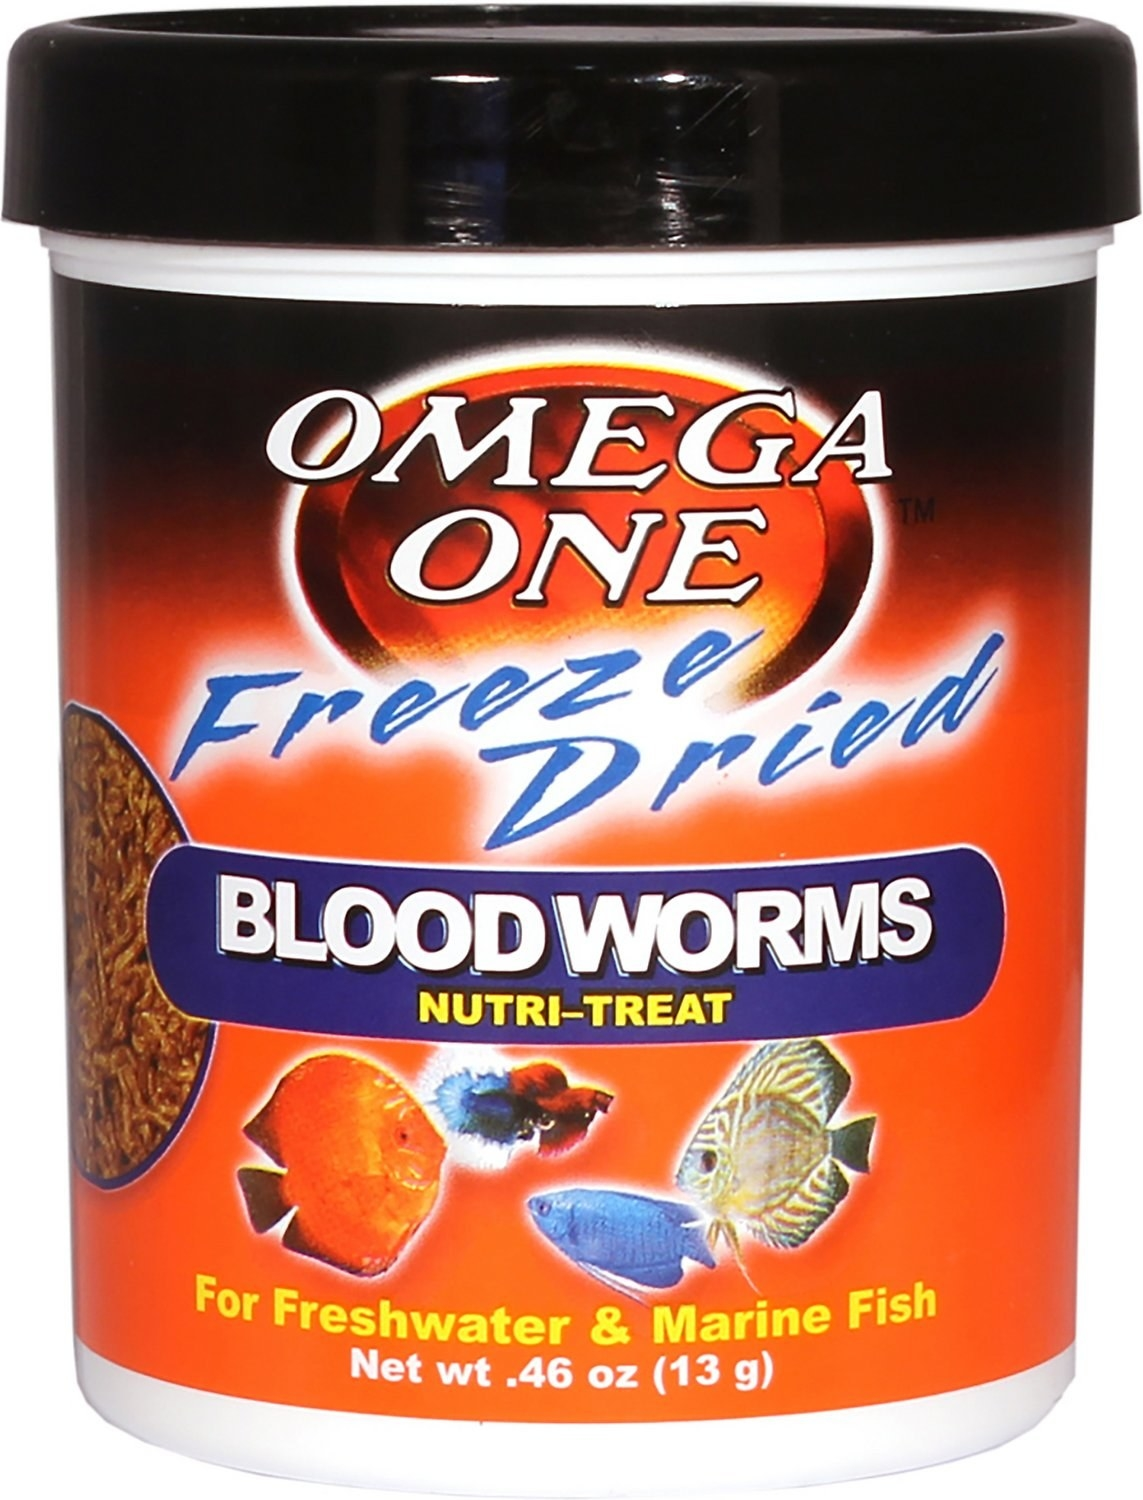 the tub of bloodworms